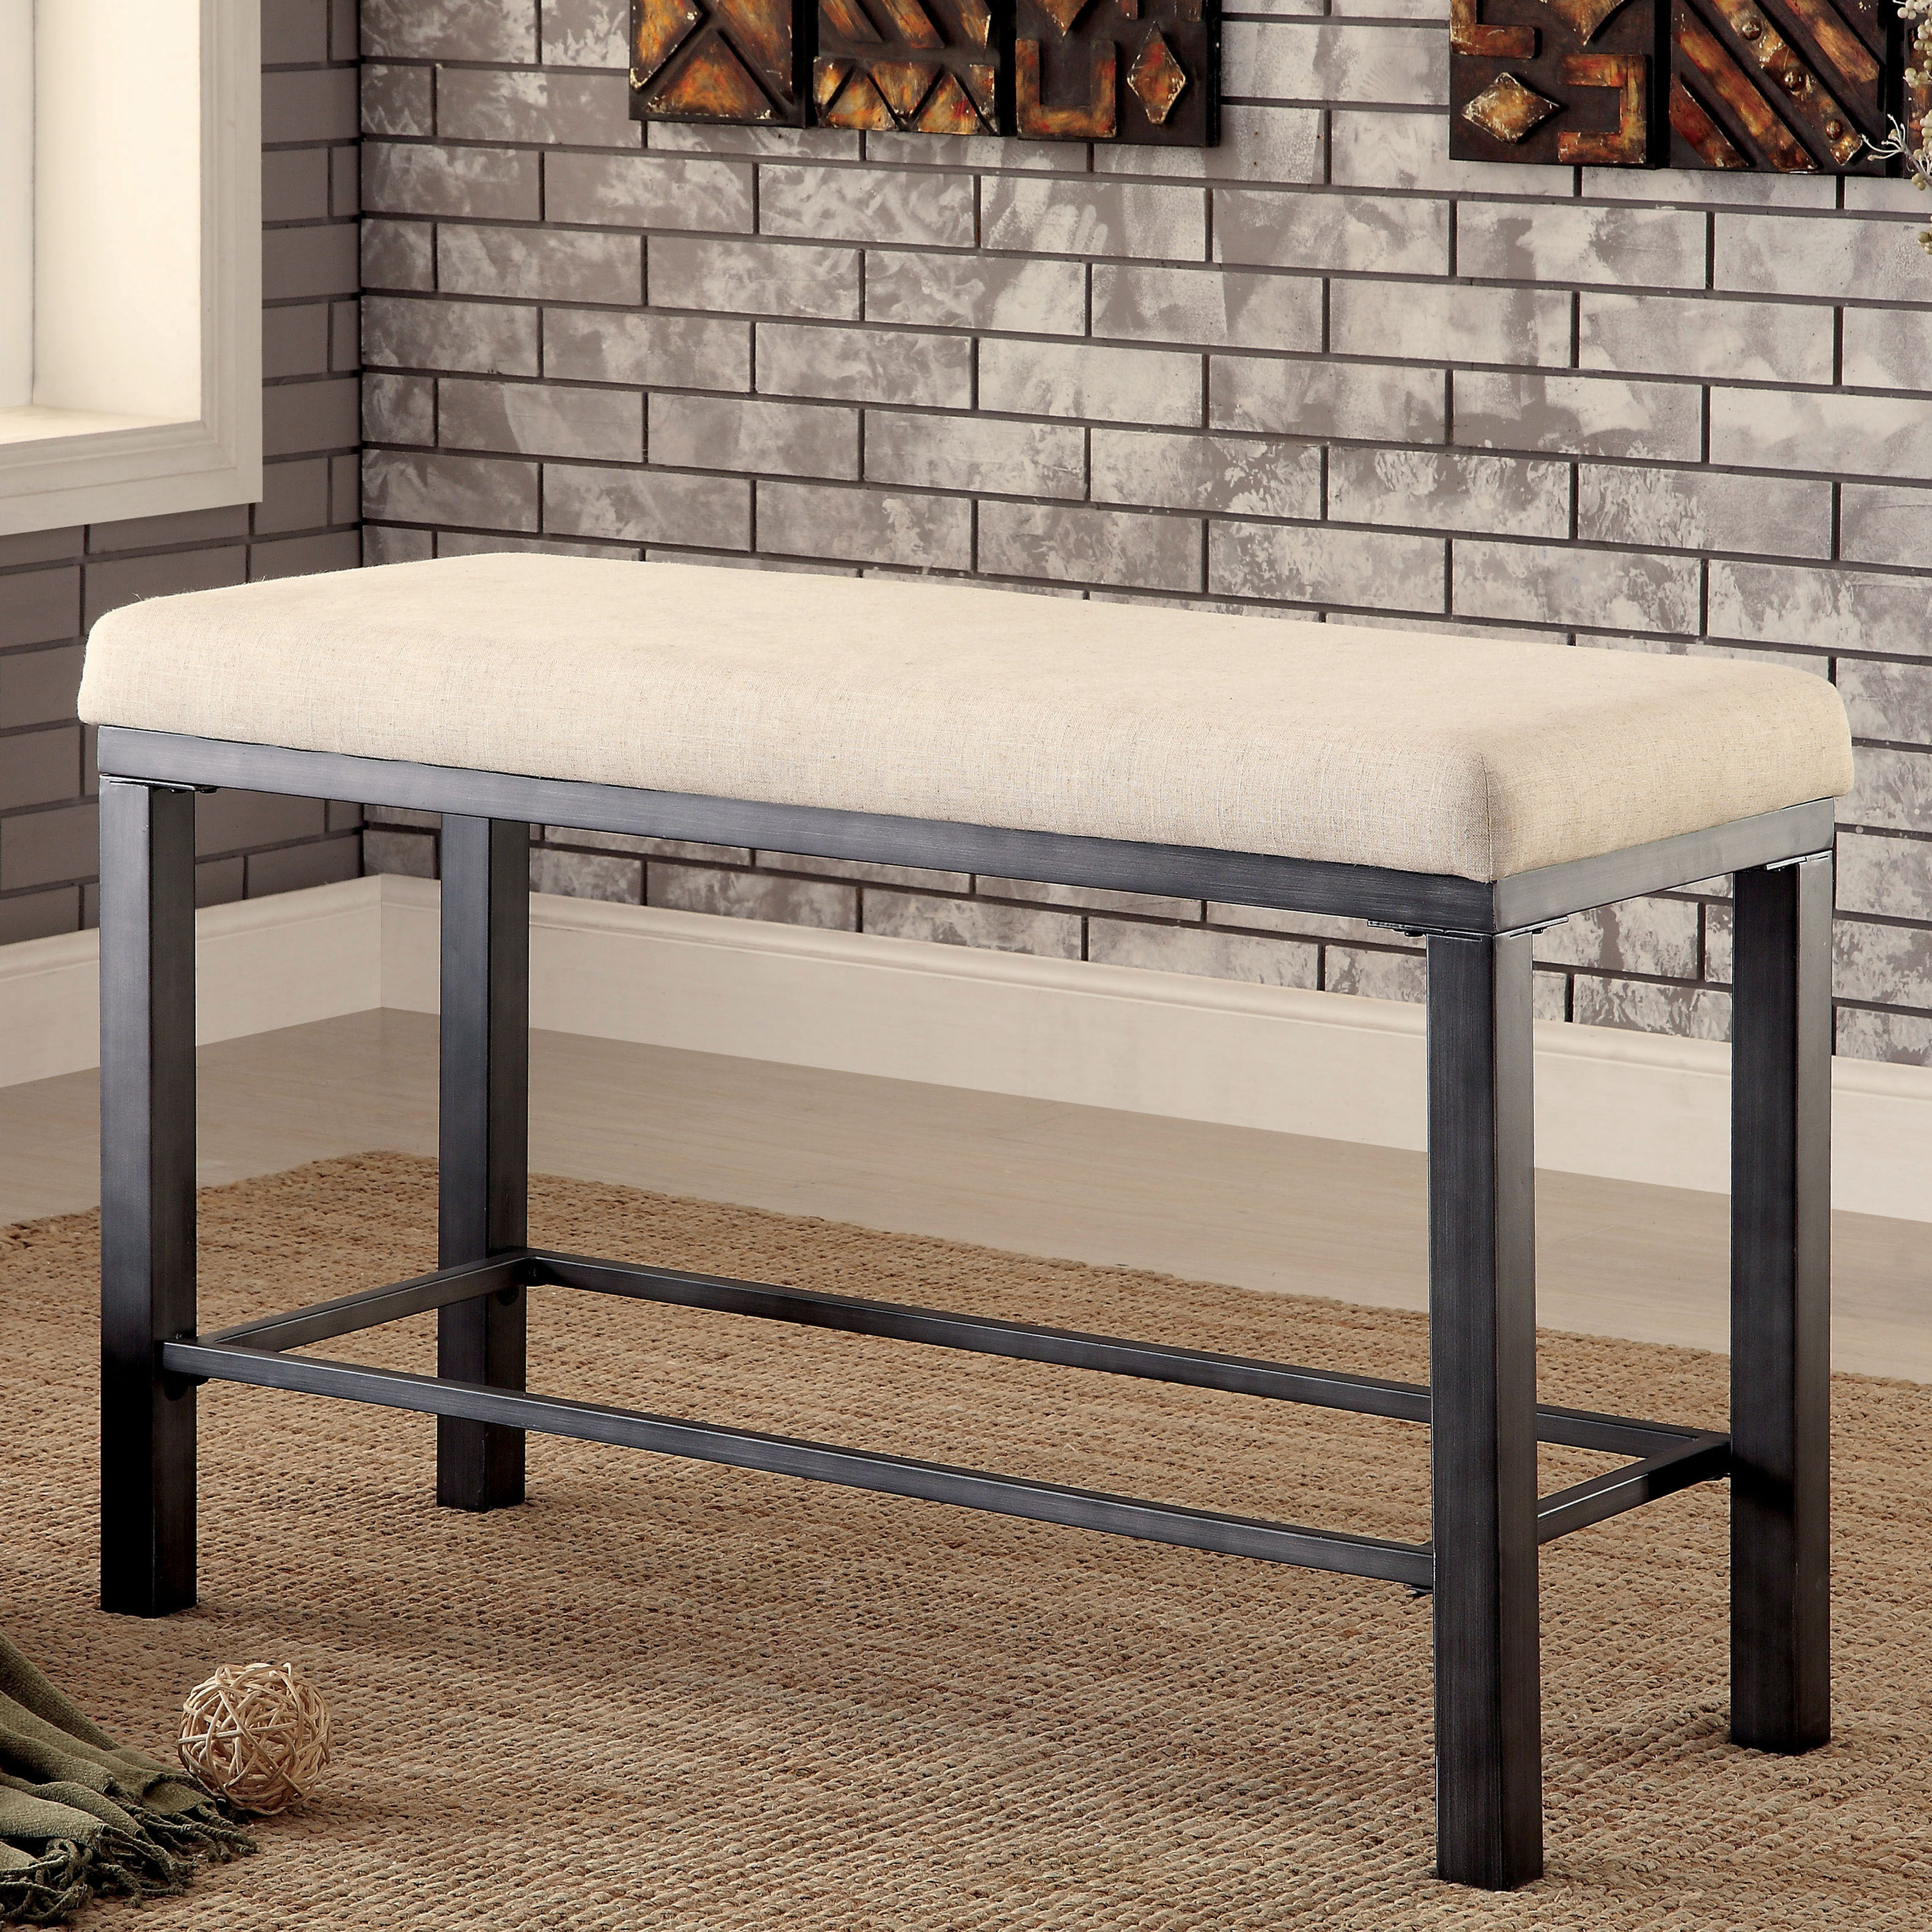 Furniture Of America Kesso Industrial Metal 25 Inch Counter Height Dining  Bench   Free Shipping Today   Overstock.com   18564699